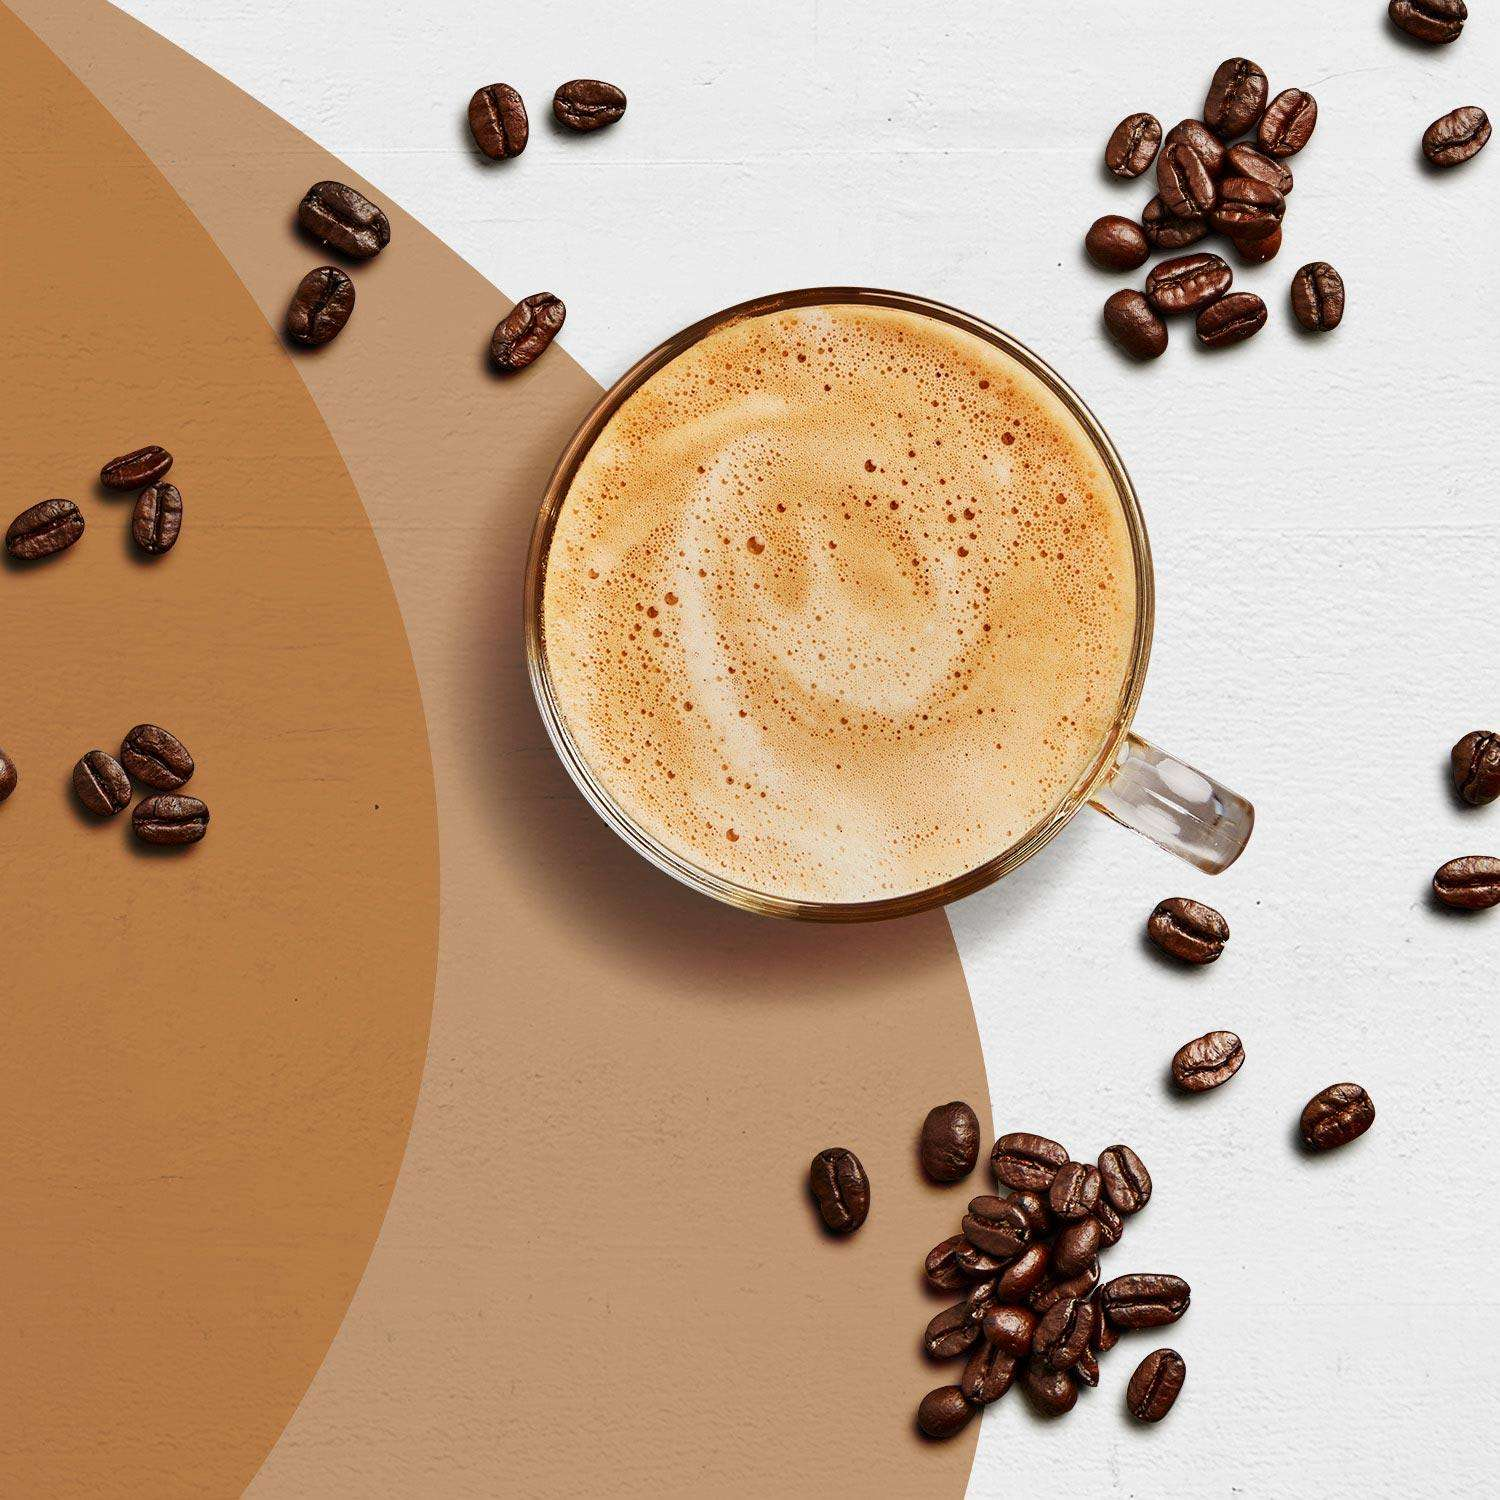 A Cafe Latte Premier Protein shake surrounded by coffee beans..